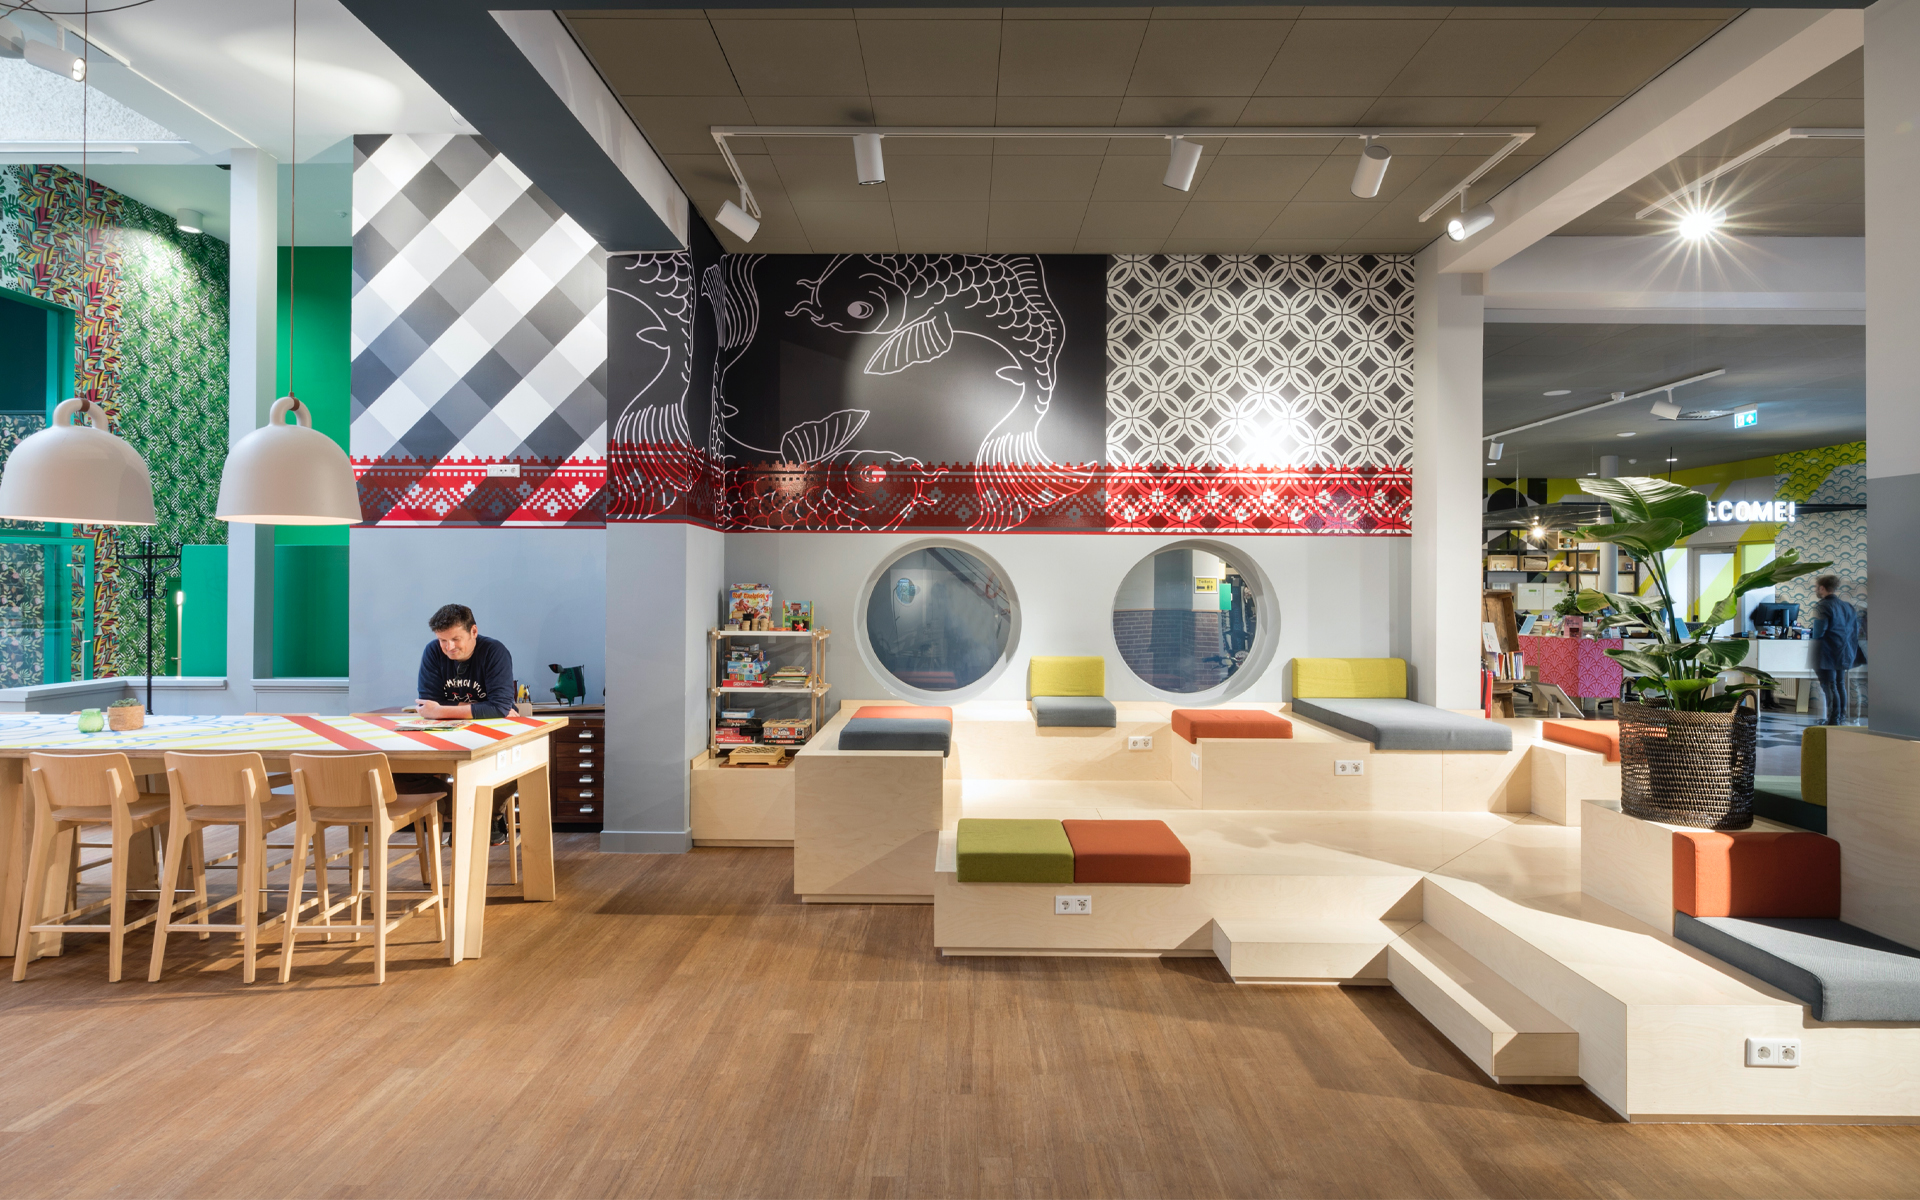 Stayokay Oost hostel Vision on Space and Experience